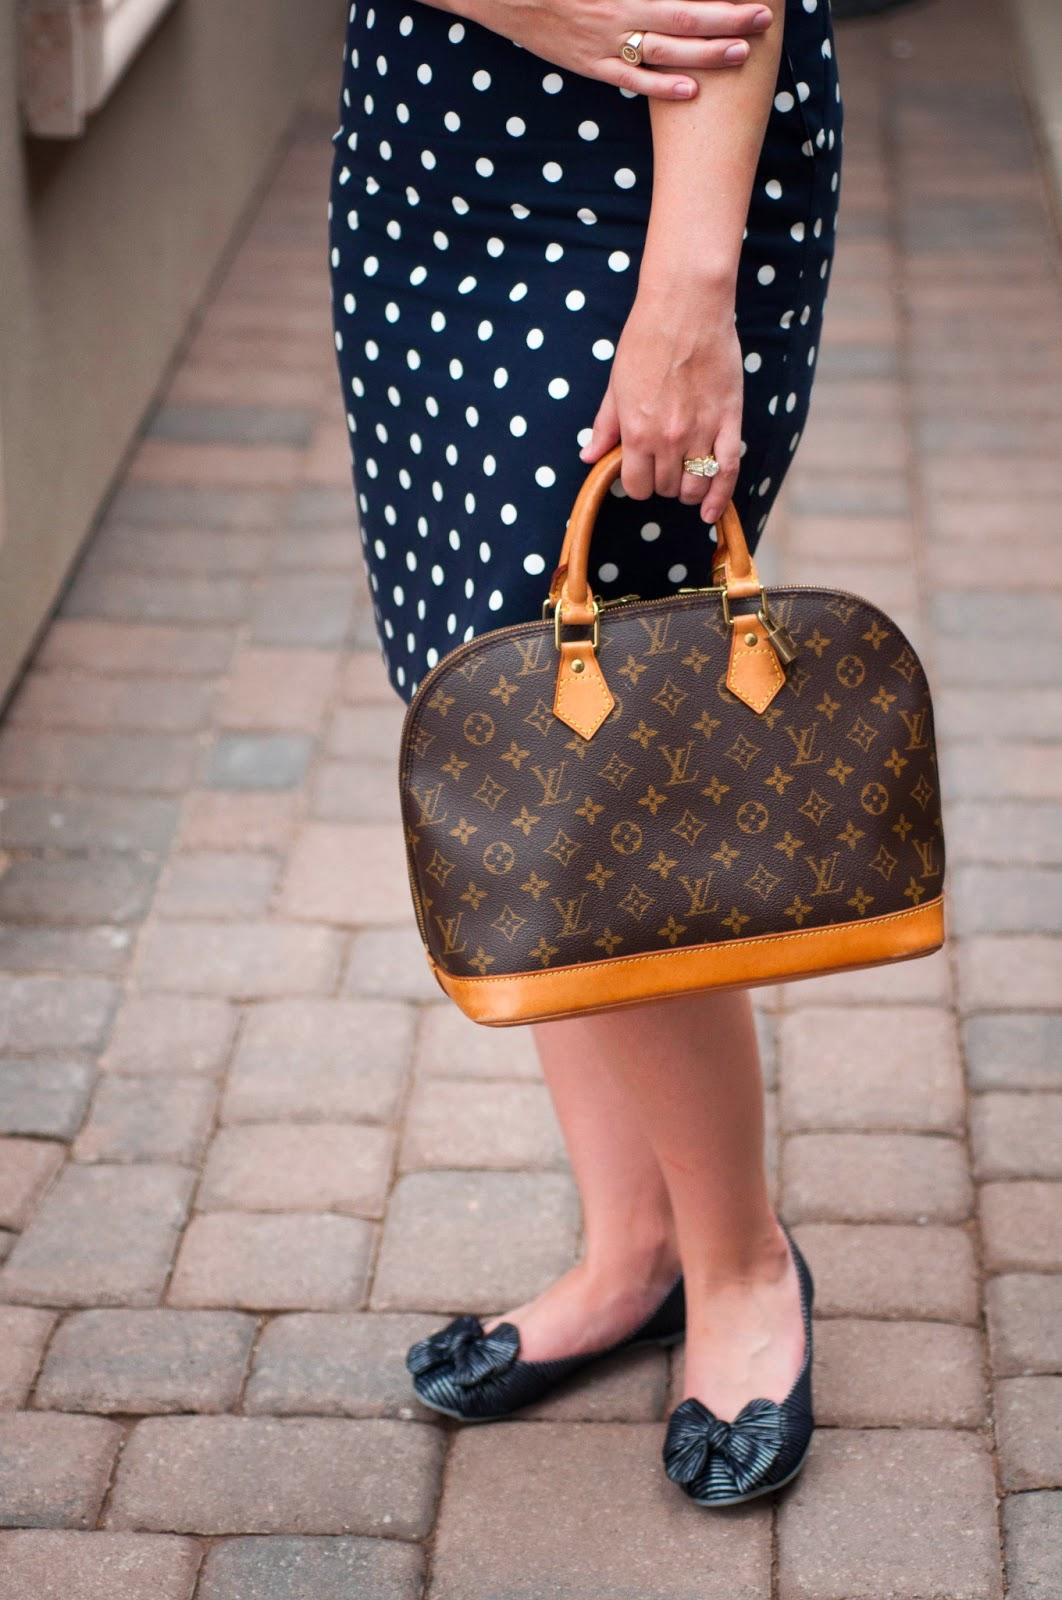 louis vuitton alma, louis vuitton, louis vuitton alma original monogram print, bow flats, polka dot pencil skirt, polka dots, ootd